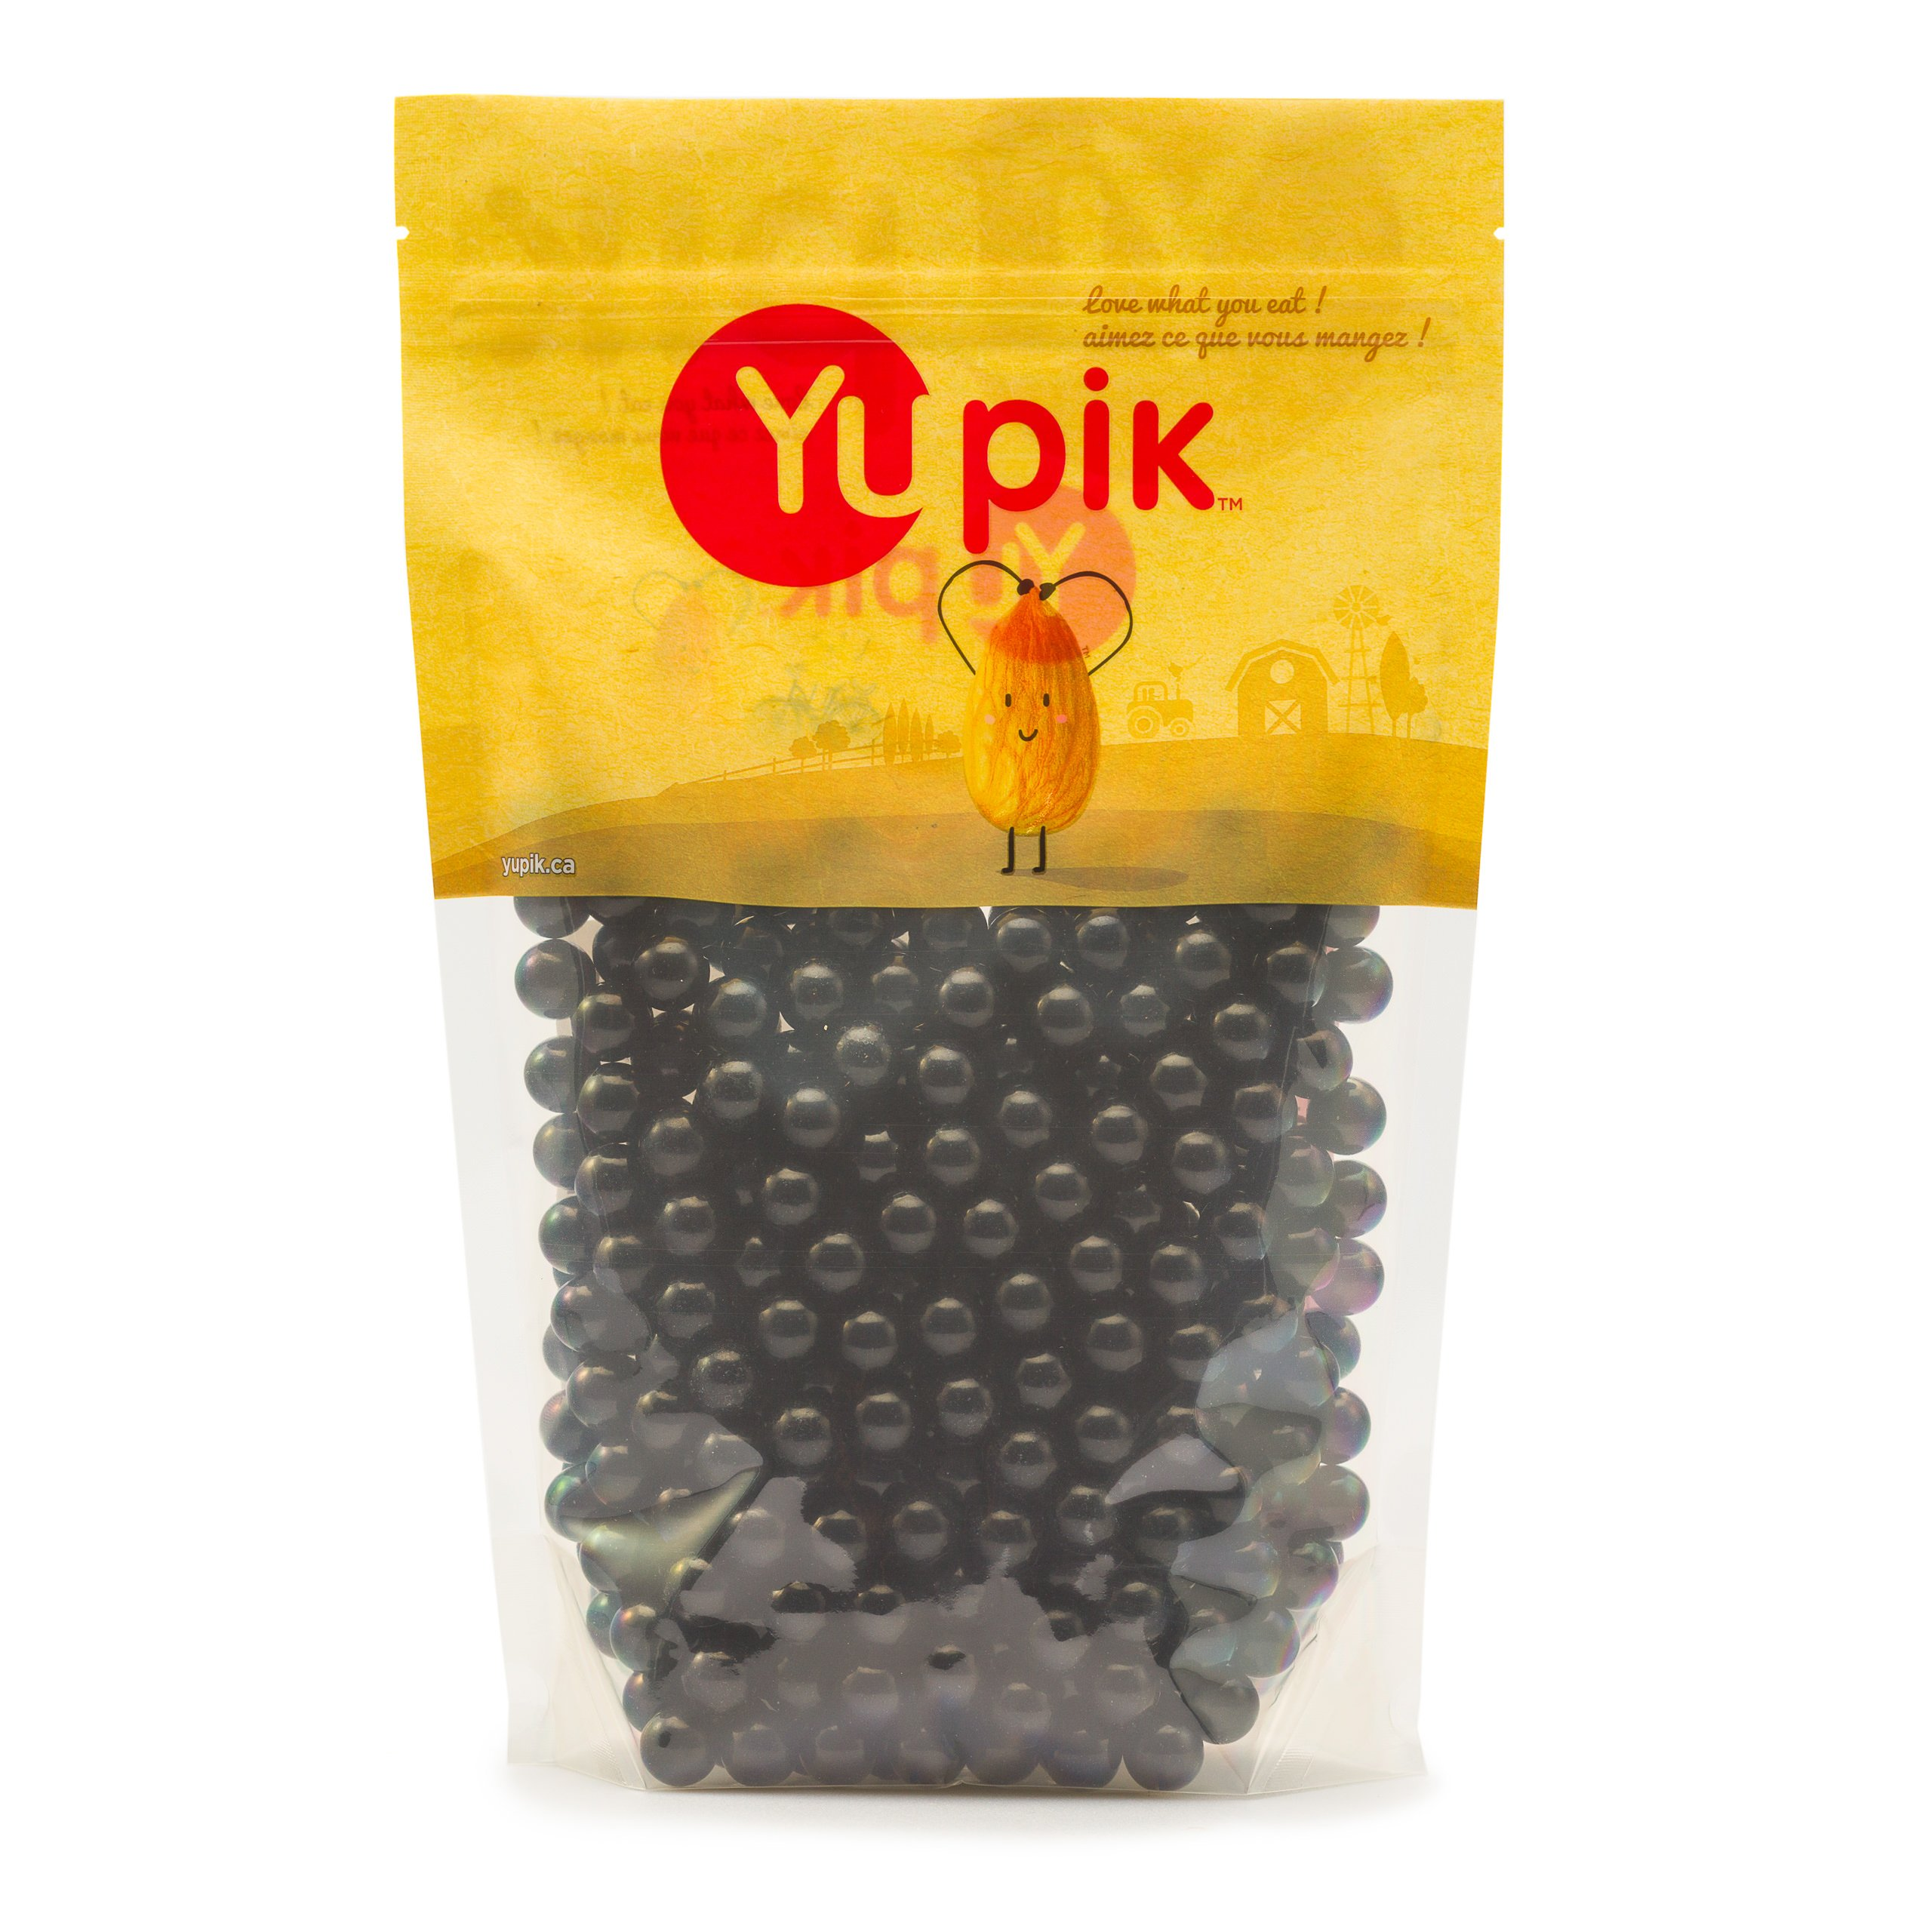 Yupik Black Licorice Jawbreakers, 1Kg/35.27 Ounces {Imported from Canada} by Yupik